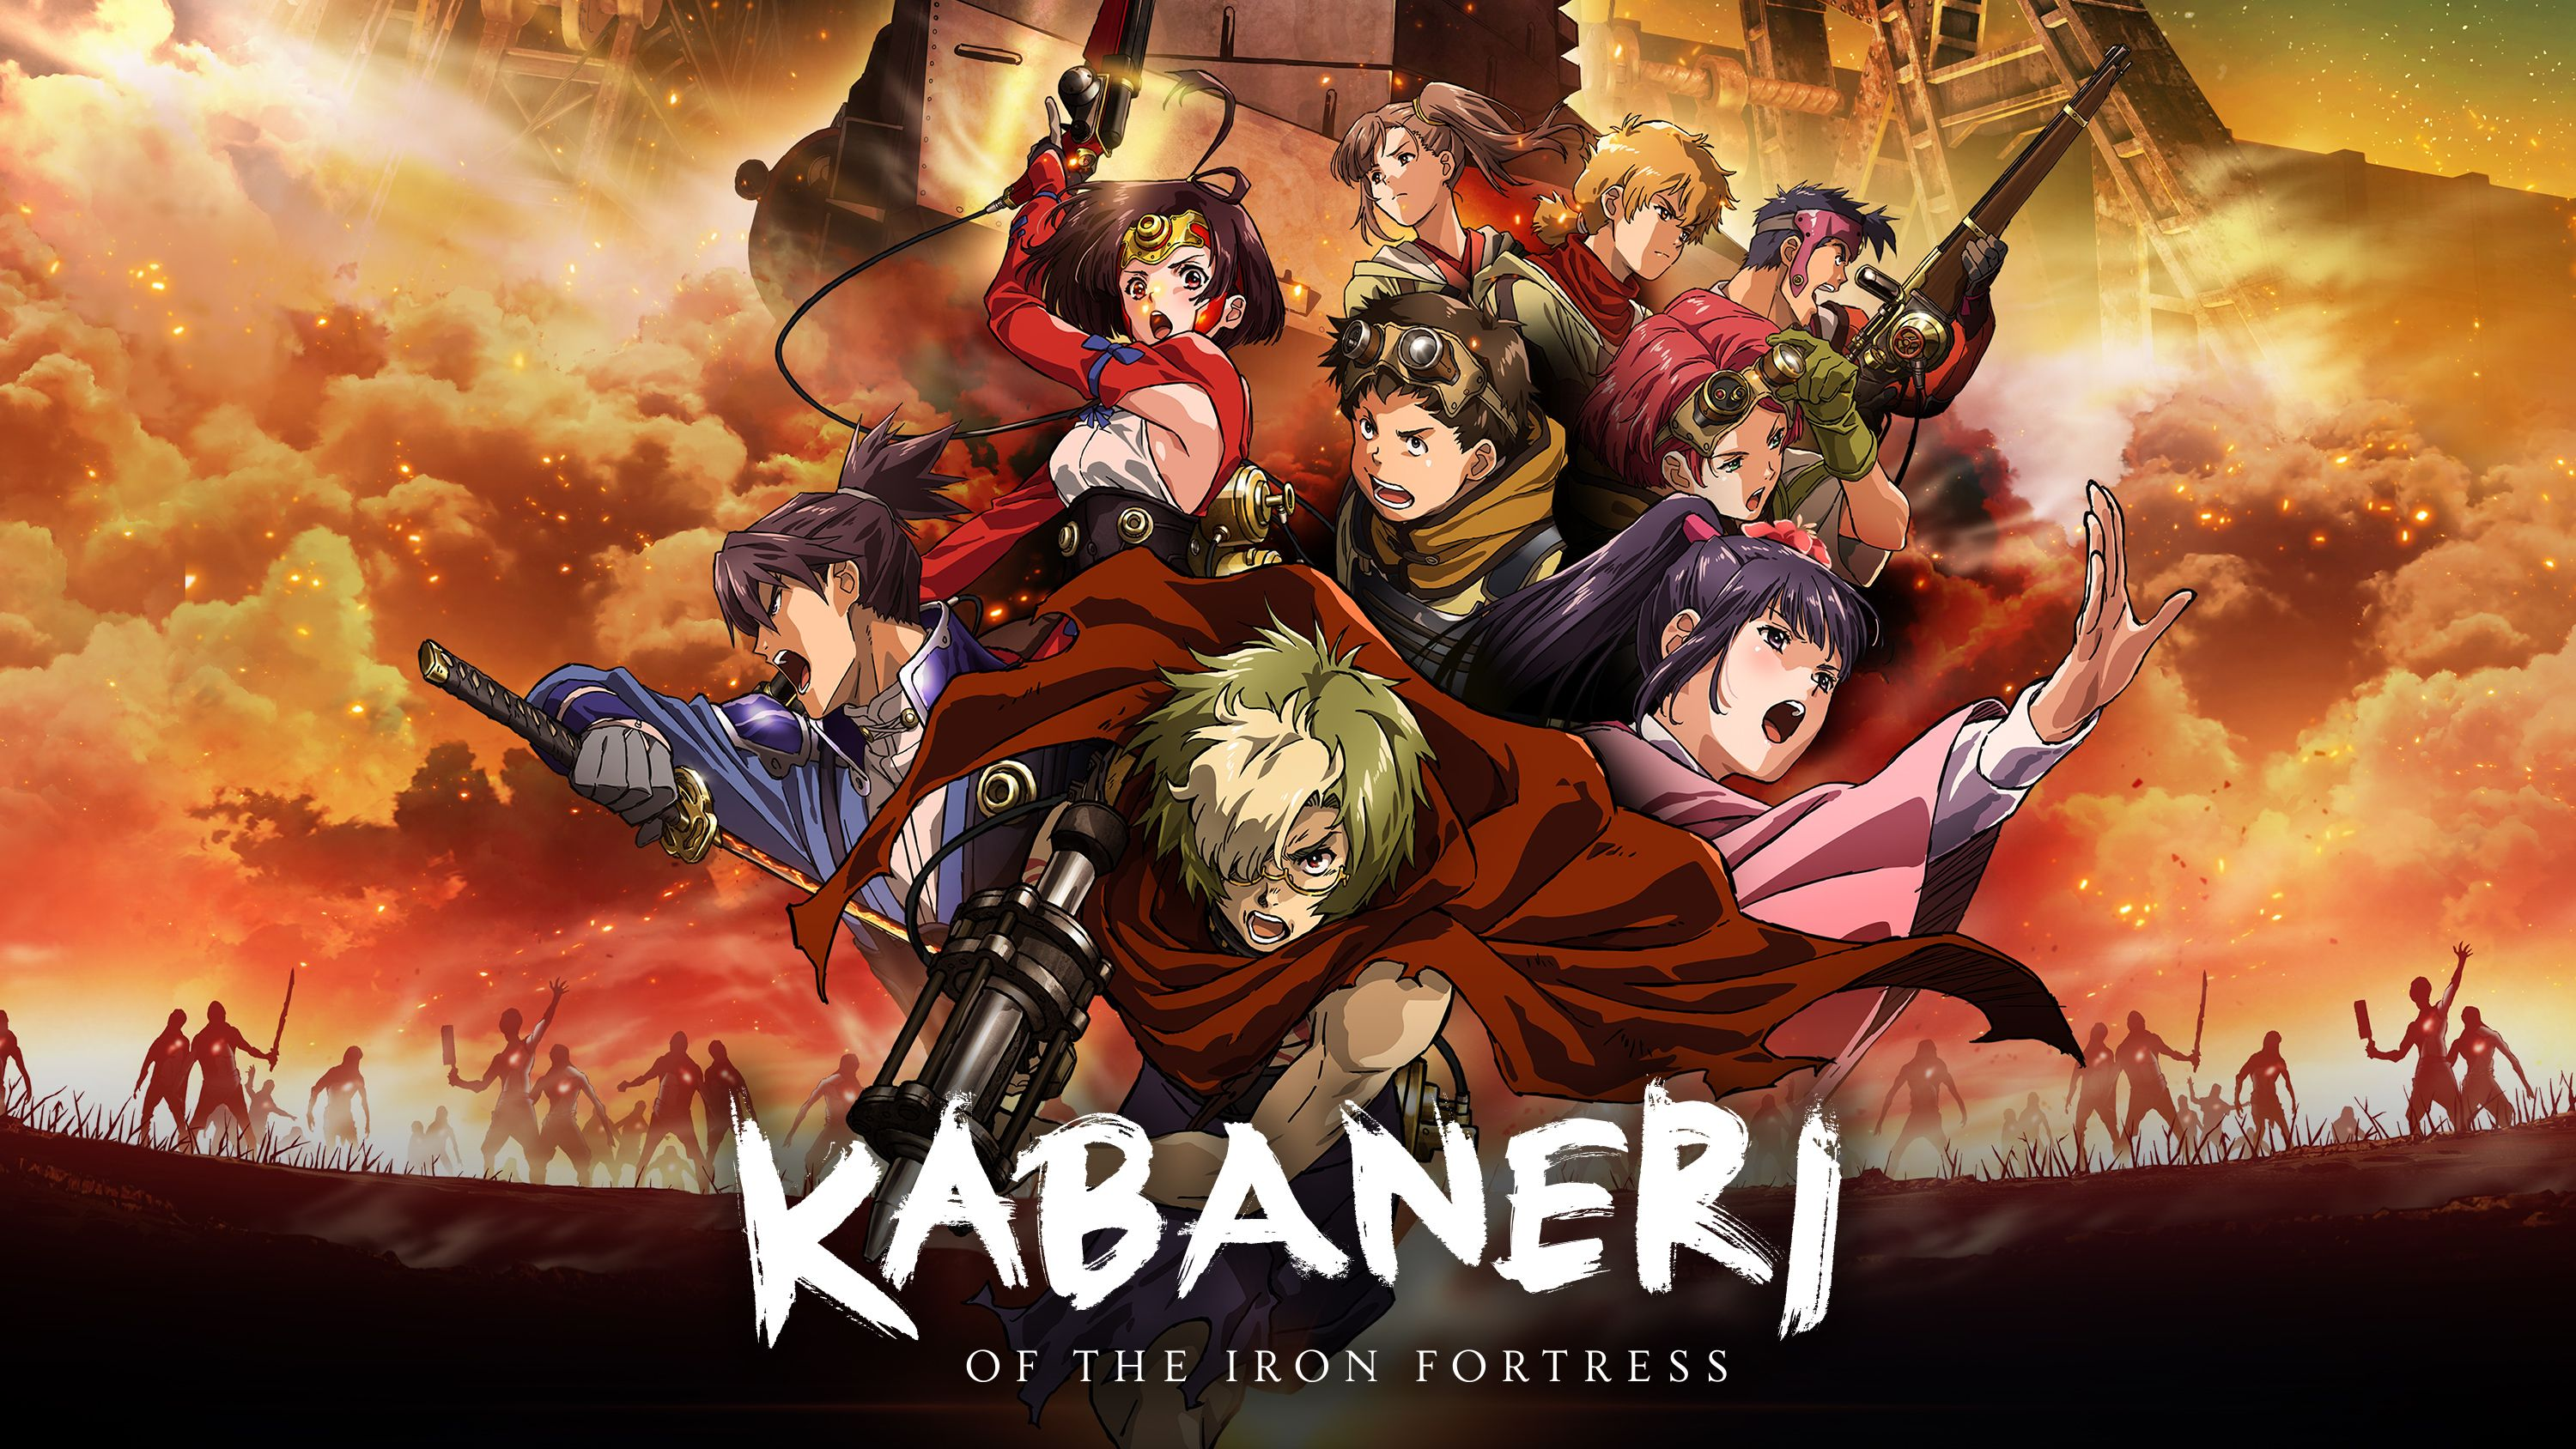 Anime Title Kabaneri Of The Iron Fortress Iron Fortress Anime